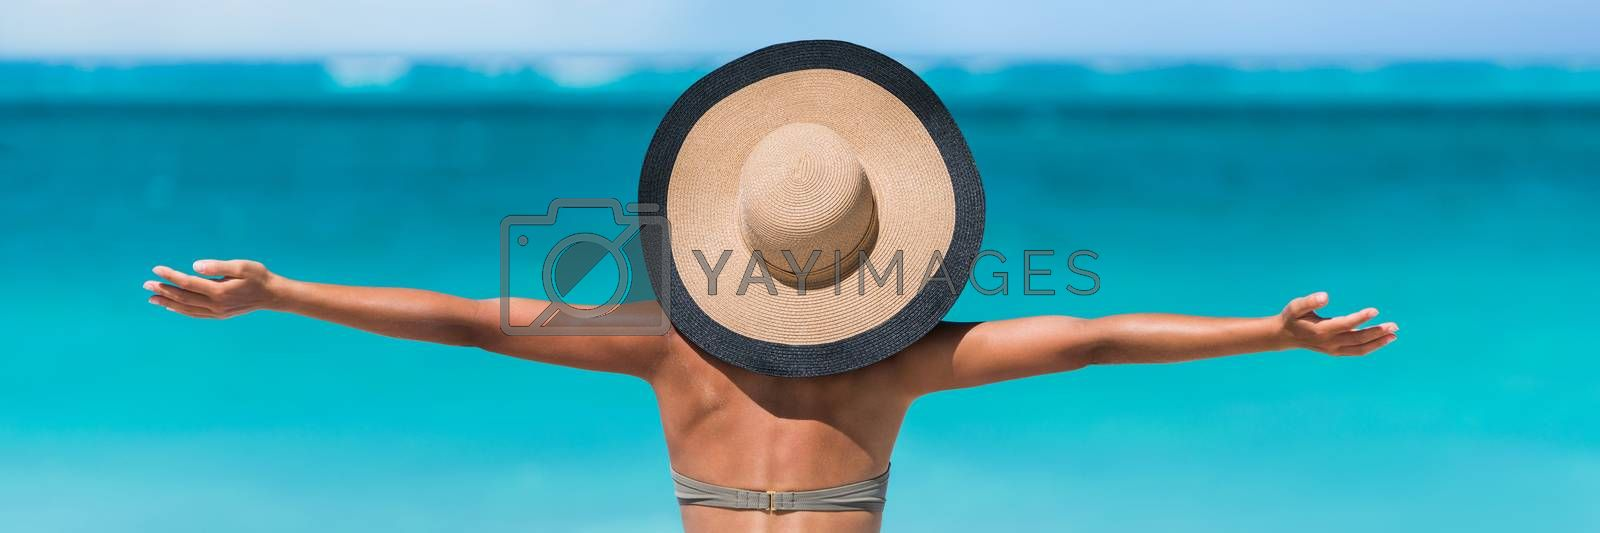 Beach vacation freedom summer travel holidays banner panorama. Woman in sun hat and bikini with open arms raised to the sky enjoying looking view of beach blue ocean.